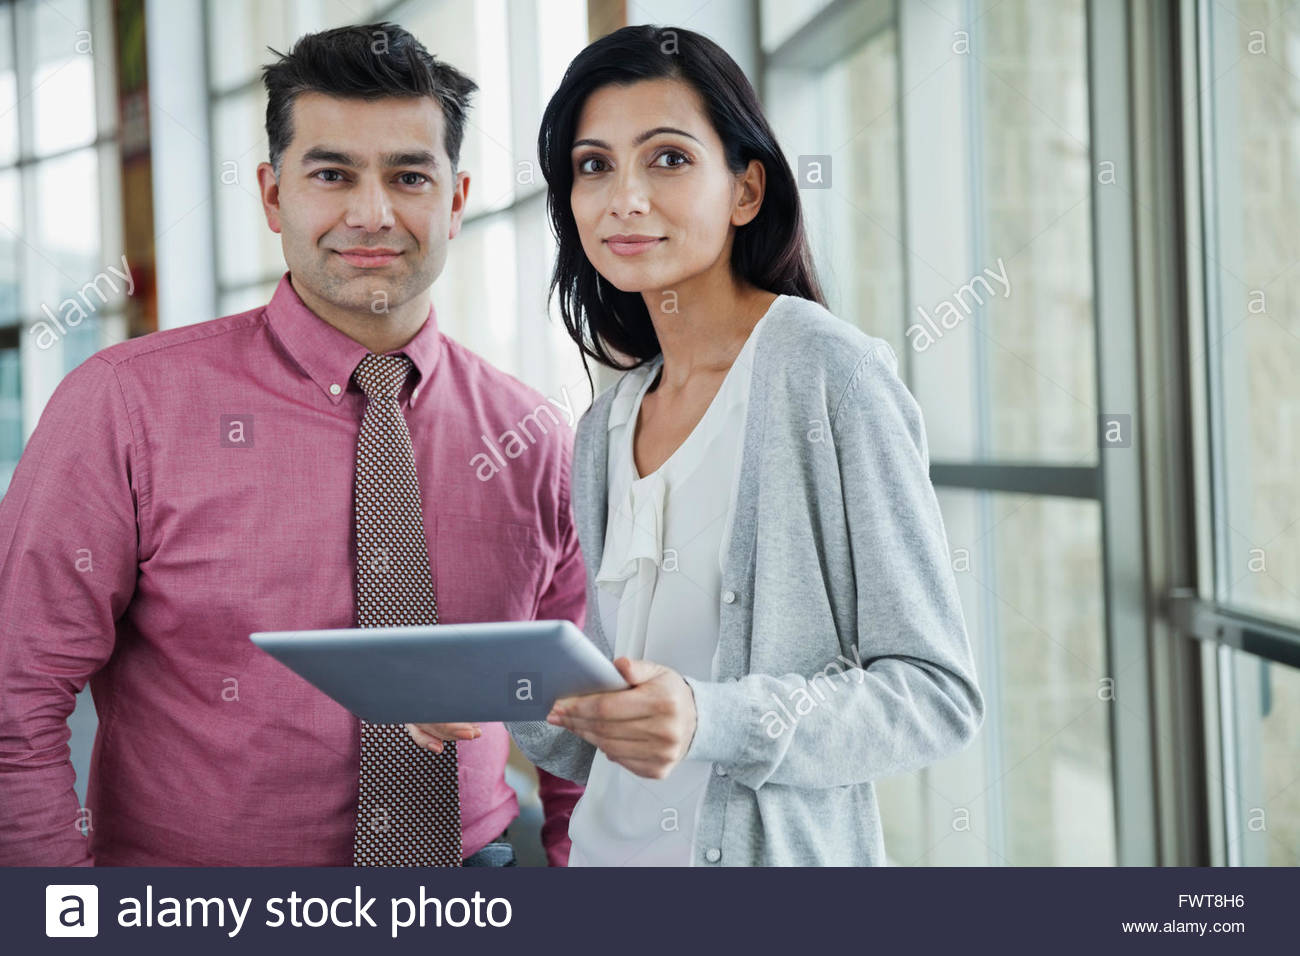 Portrait of businessman with female colleague holding digital tablet - Stock Image